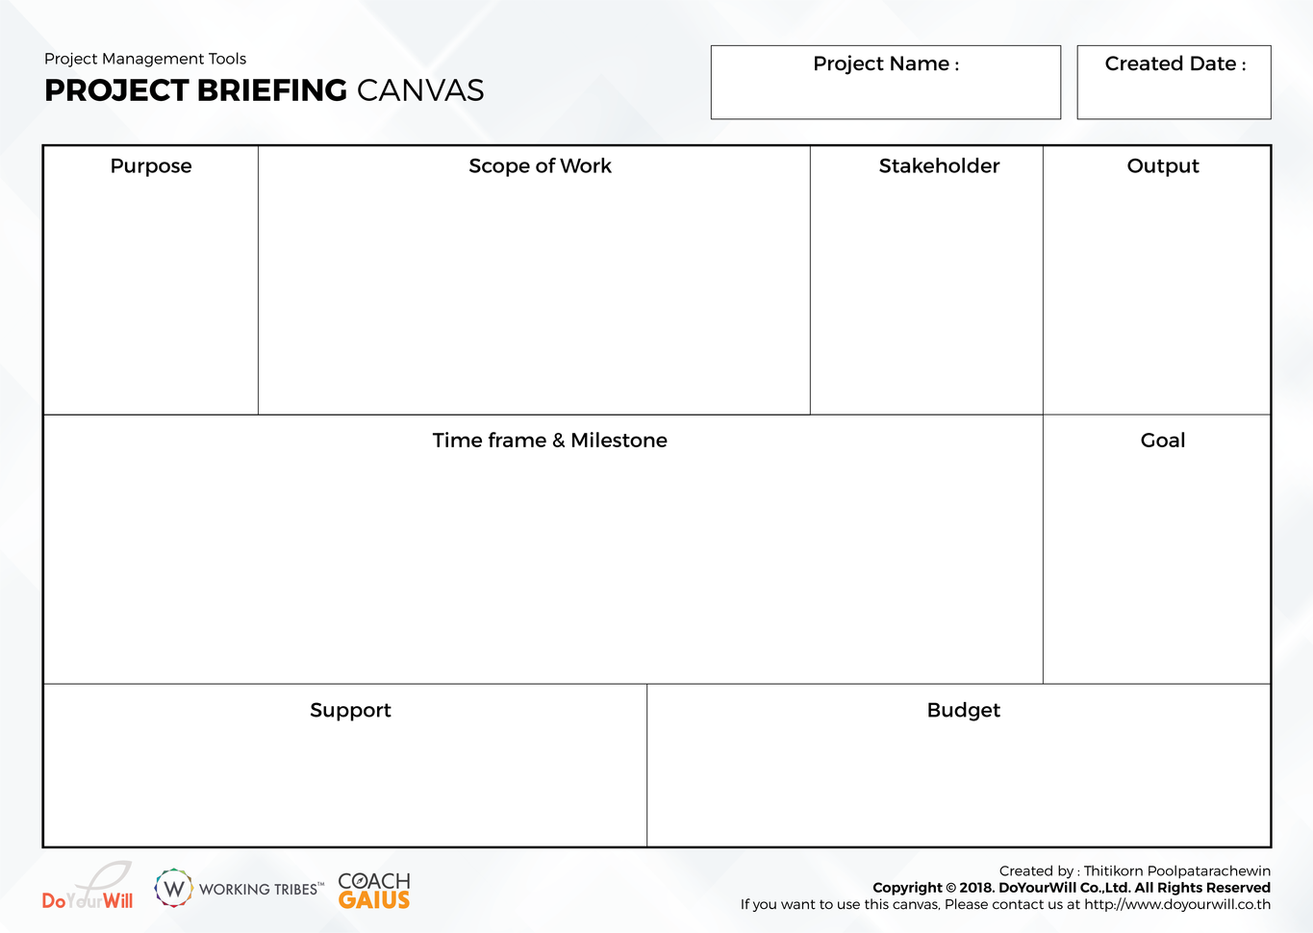 Project Brieving Canvas